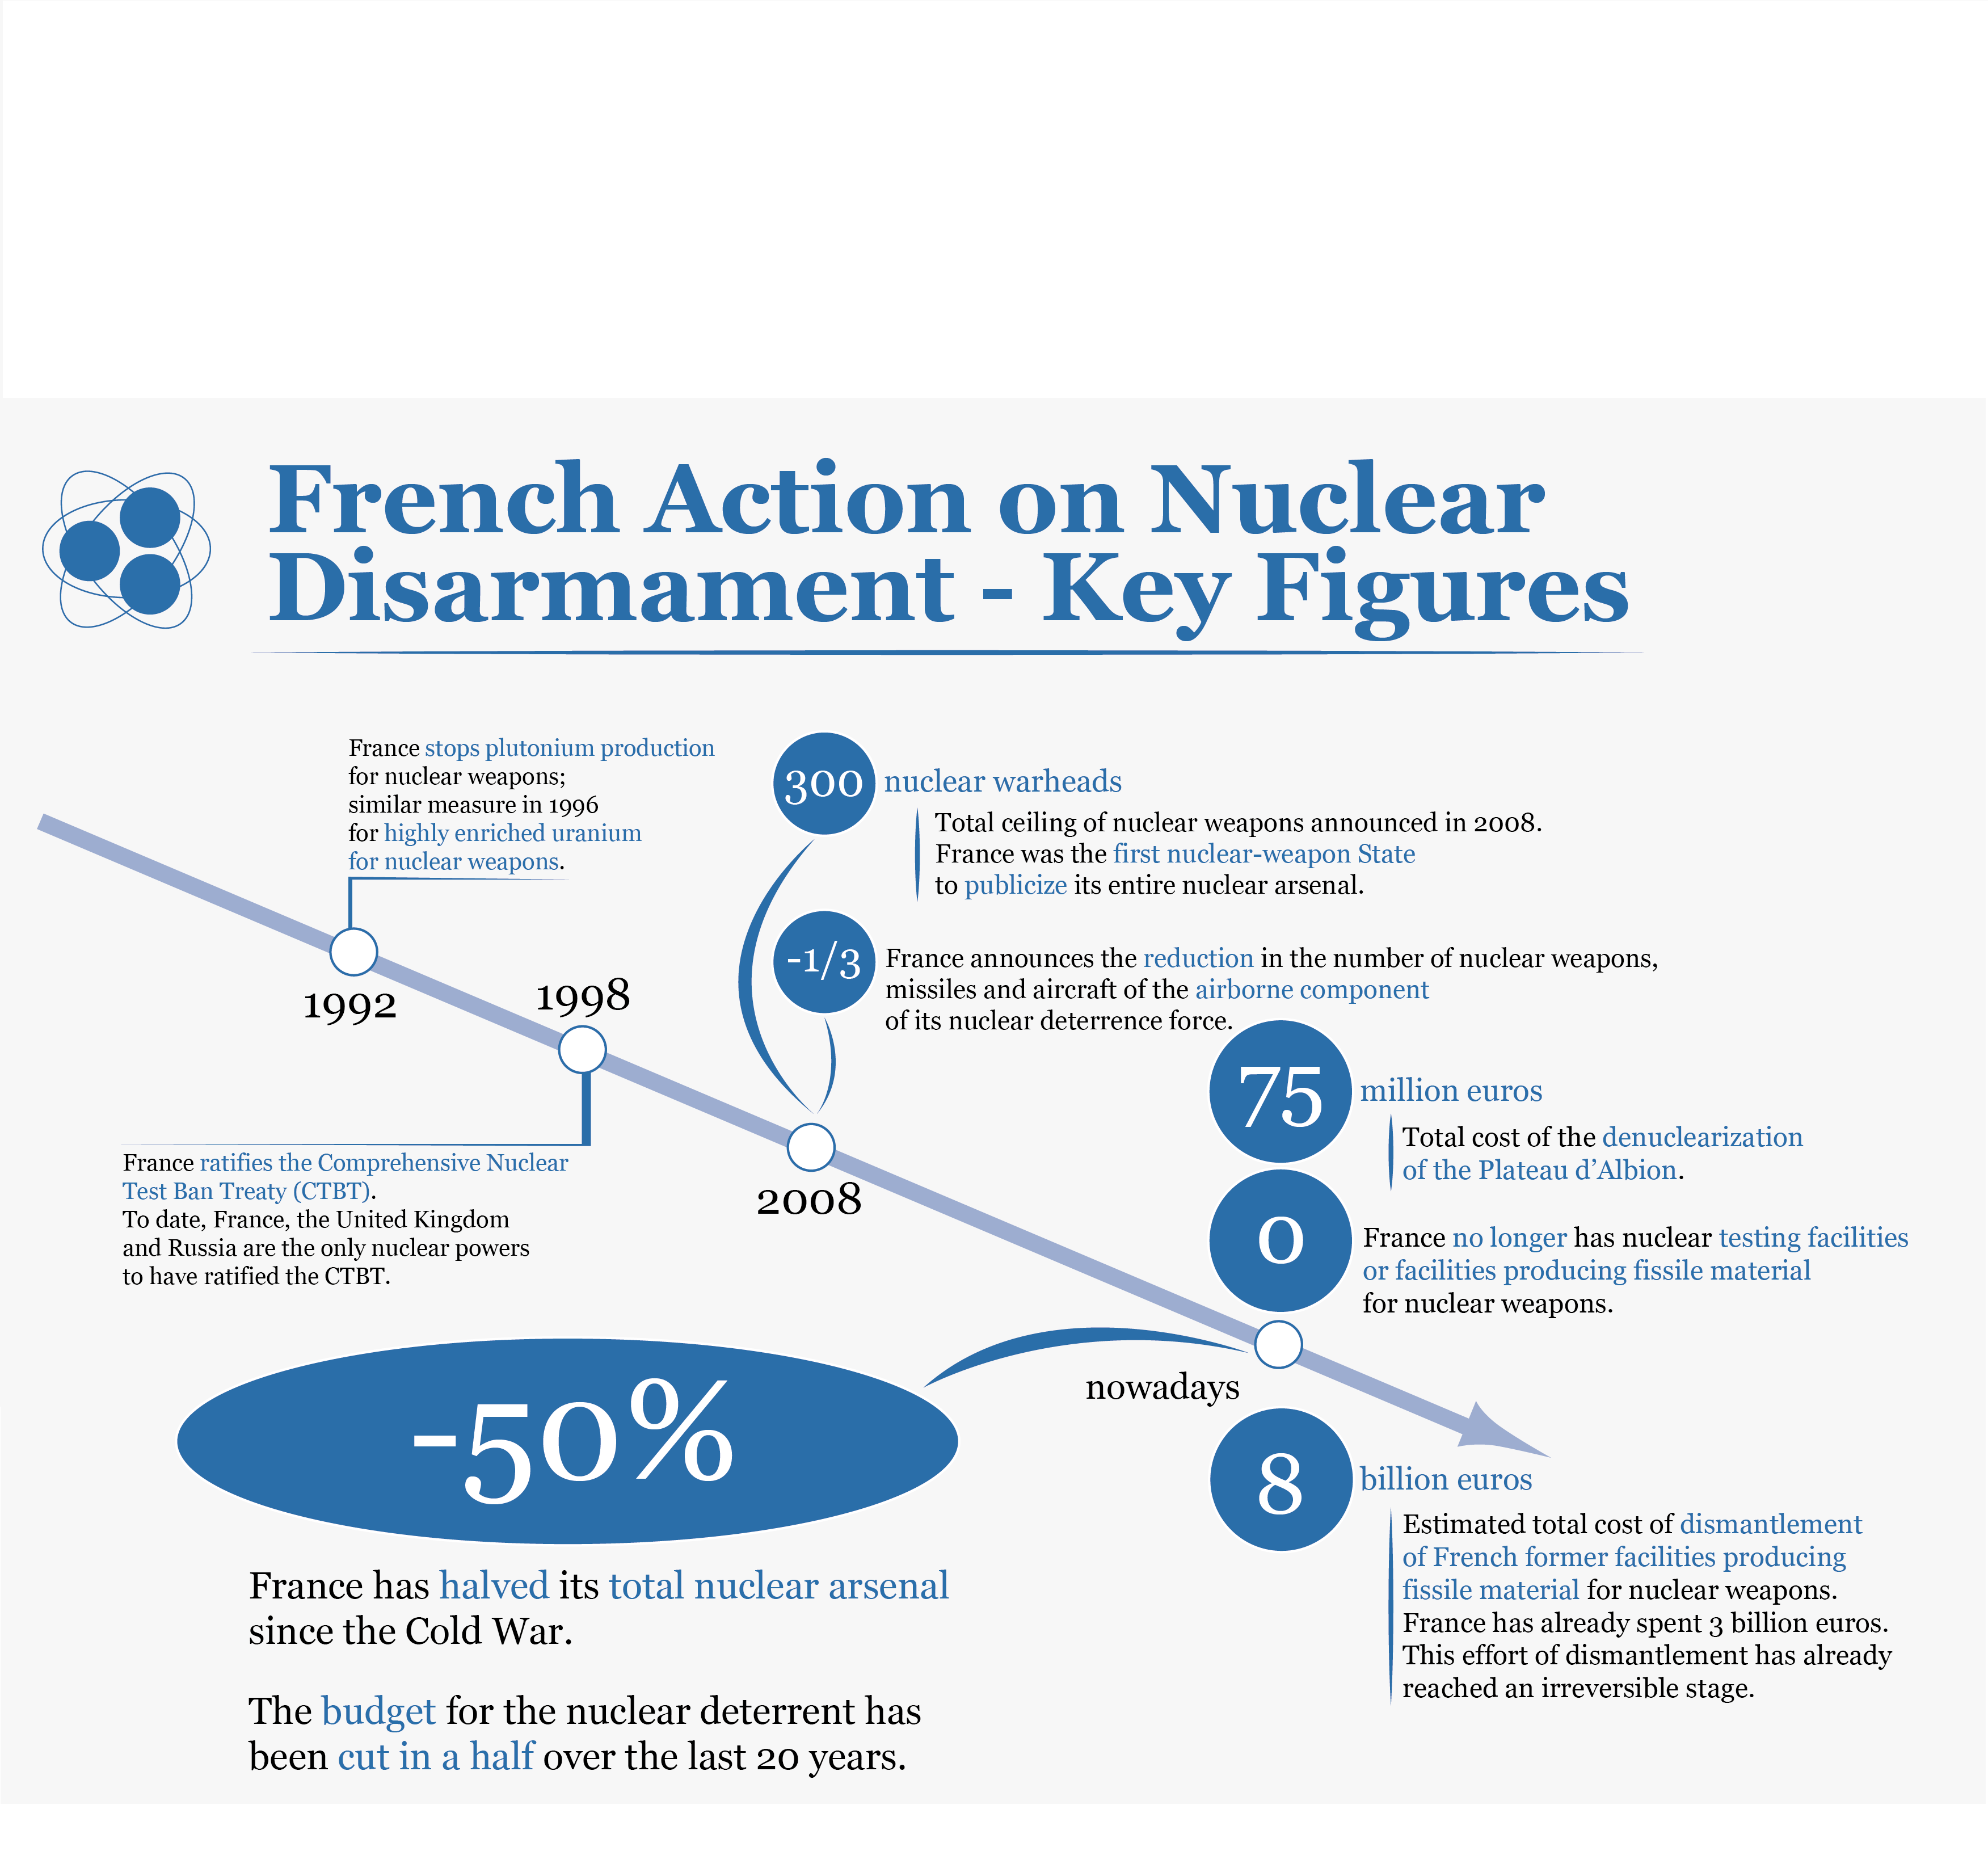 Nuclear Disarmament: France's action (© DICoD / Mathieu Hingray - Jean-Charles Mougeot)